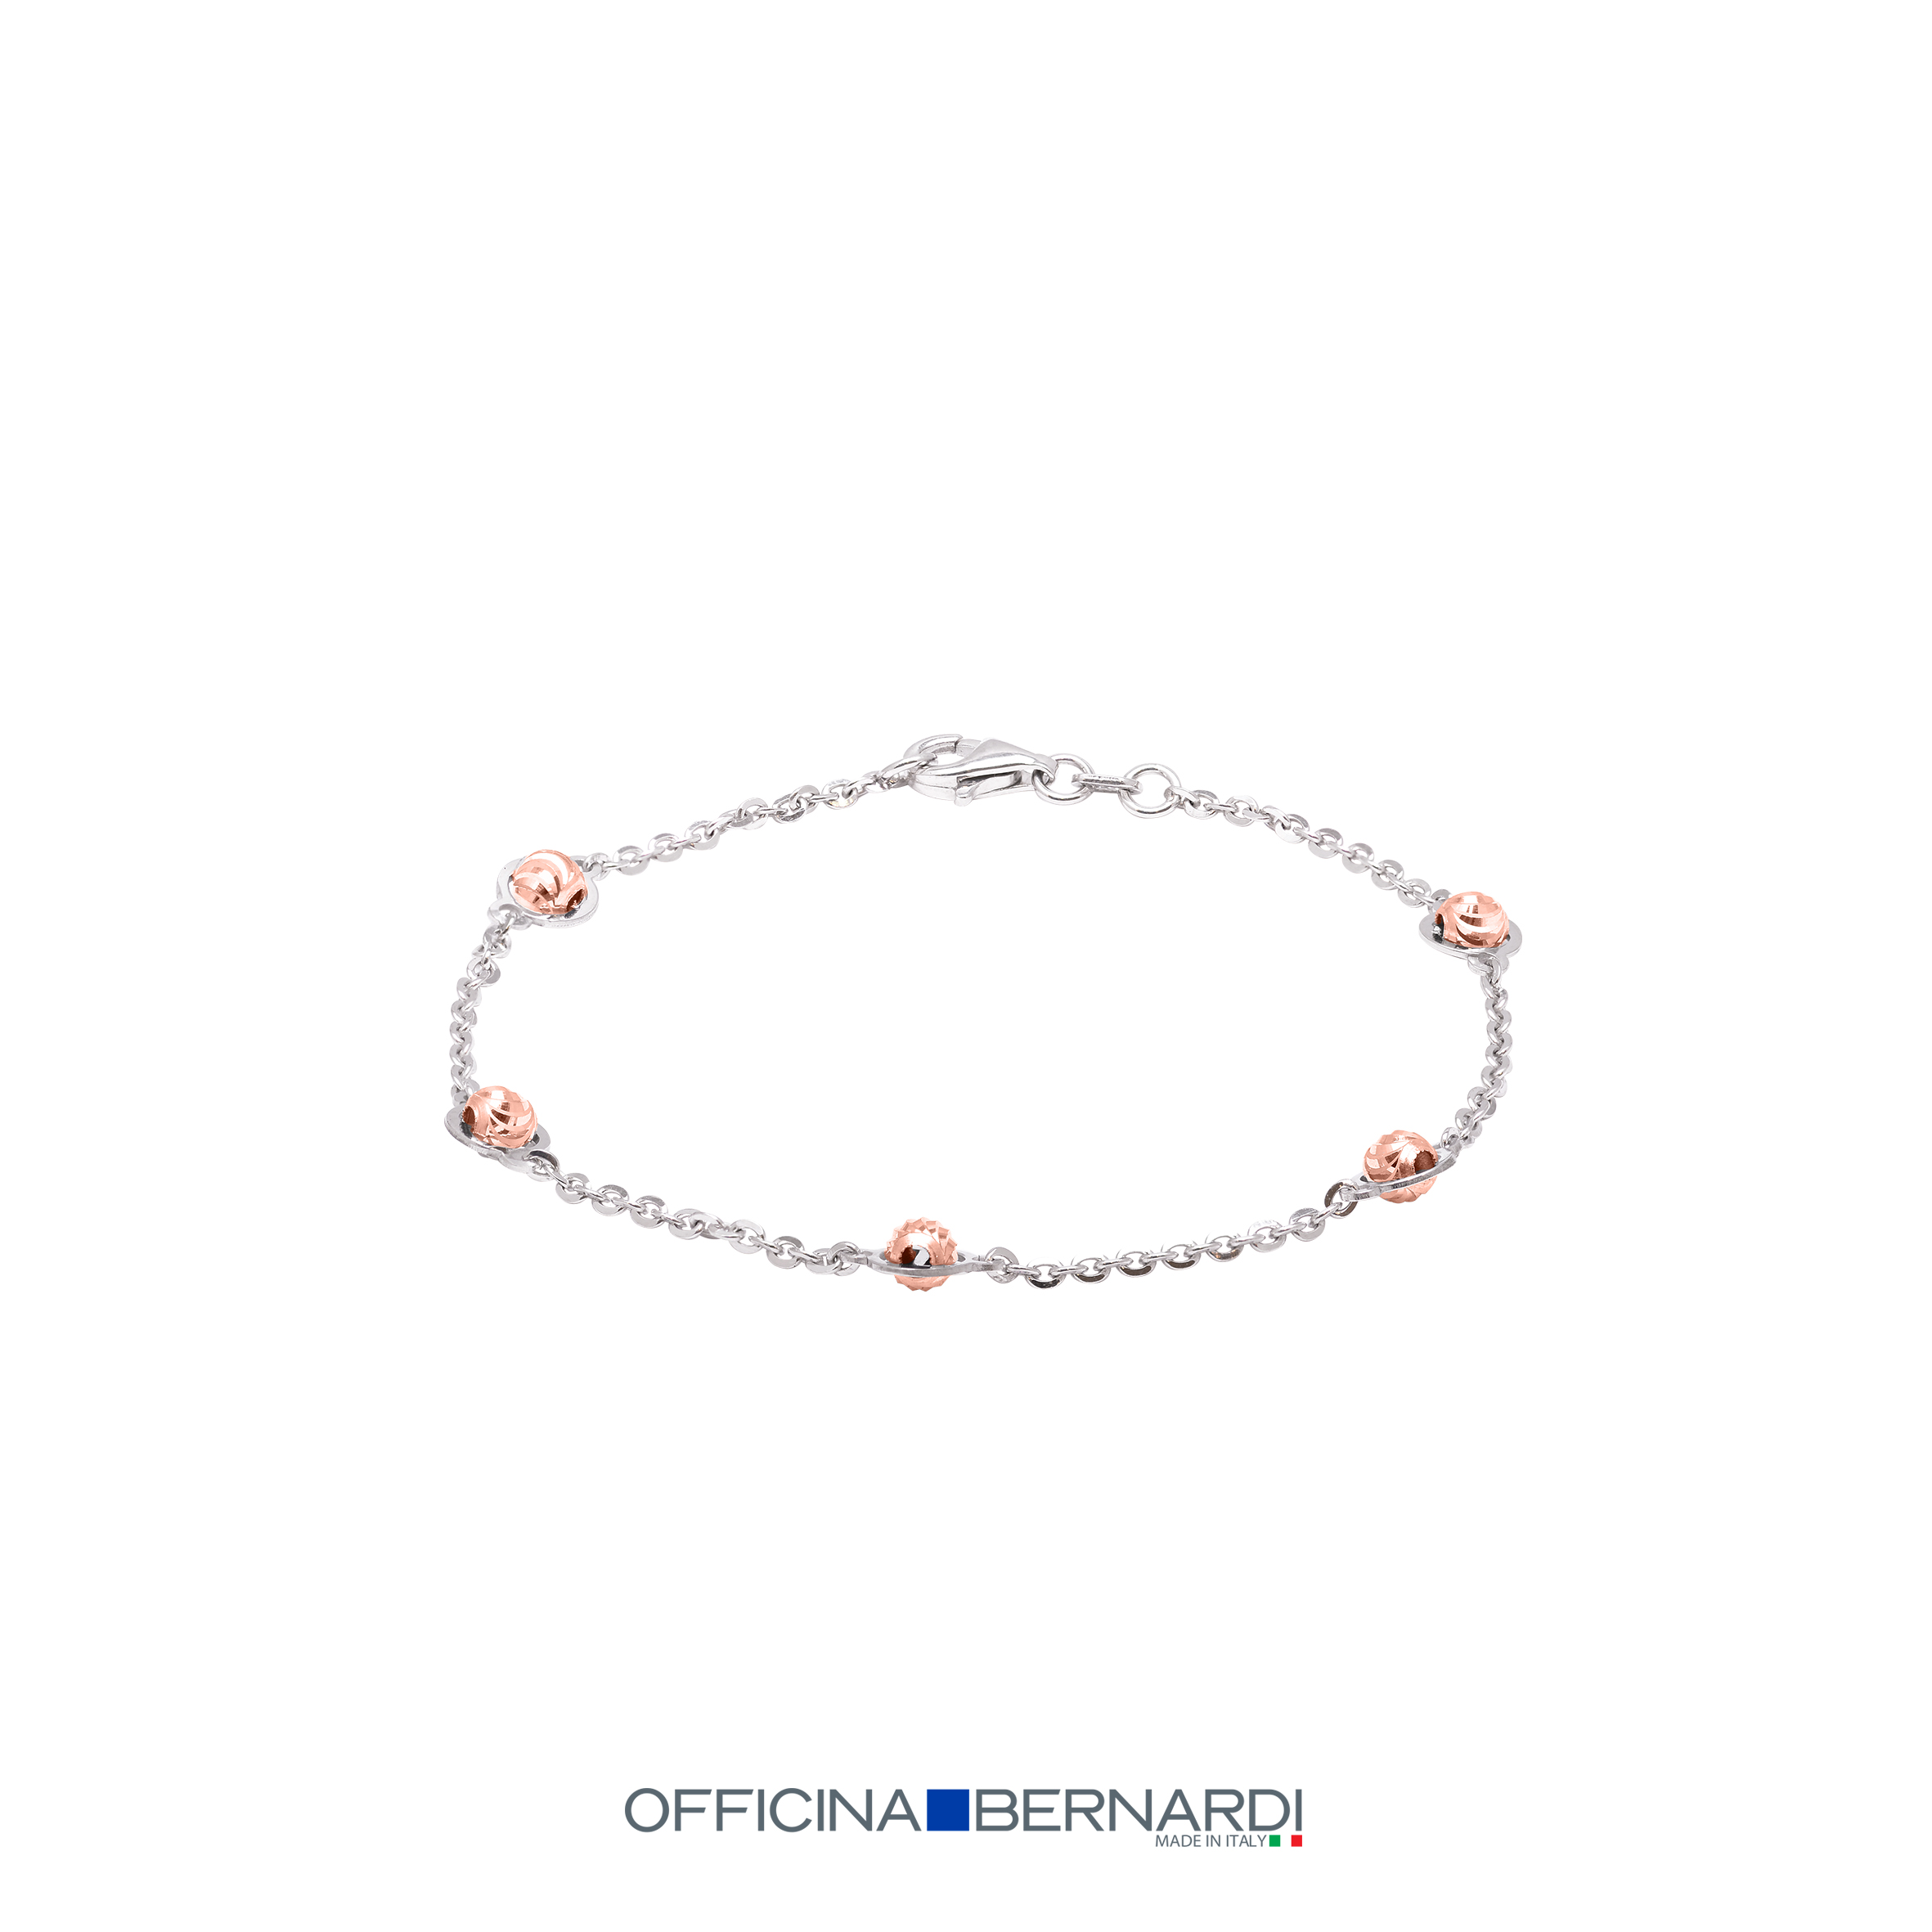 Station style bracelet cable style with rhodium with 4mm diamond cut beads with 18k rose gold overlay, Officina Bernardi, 7 inches